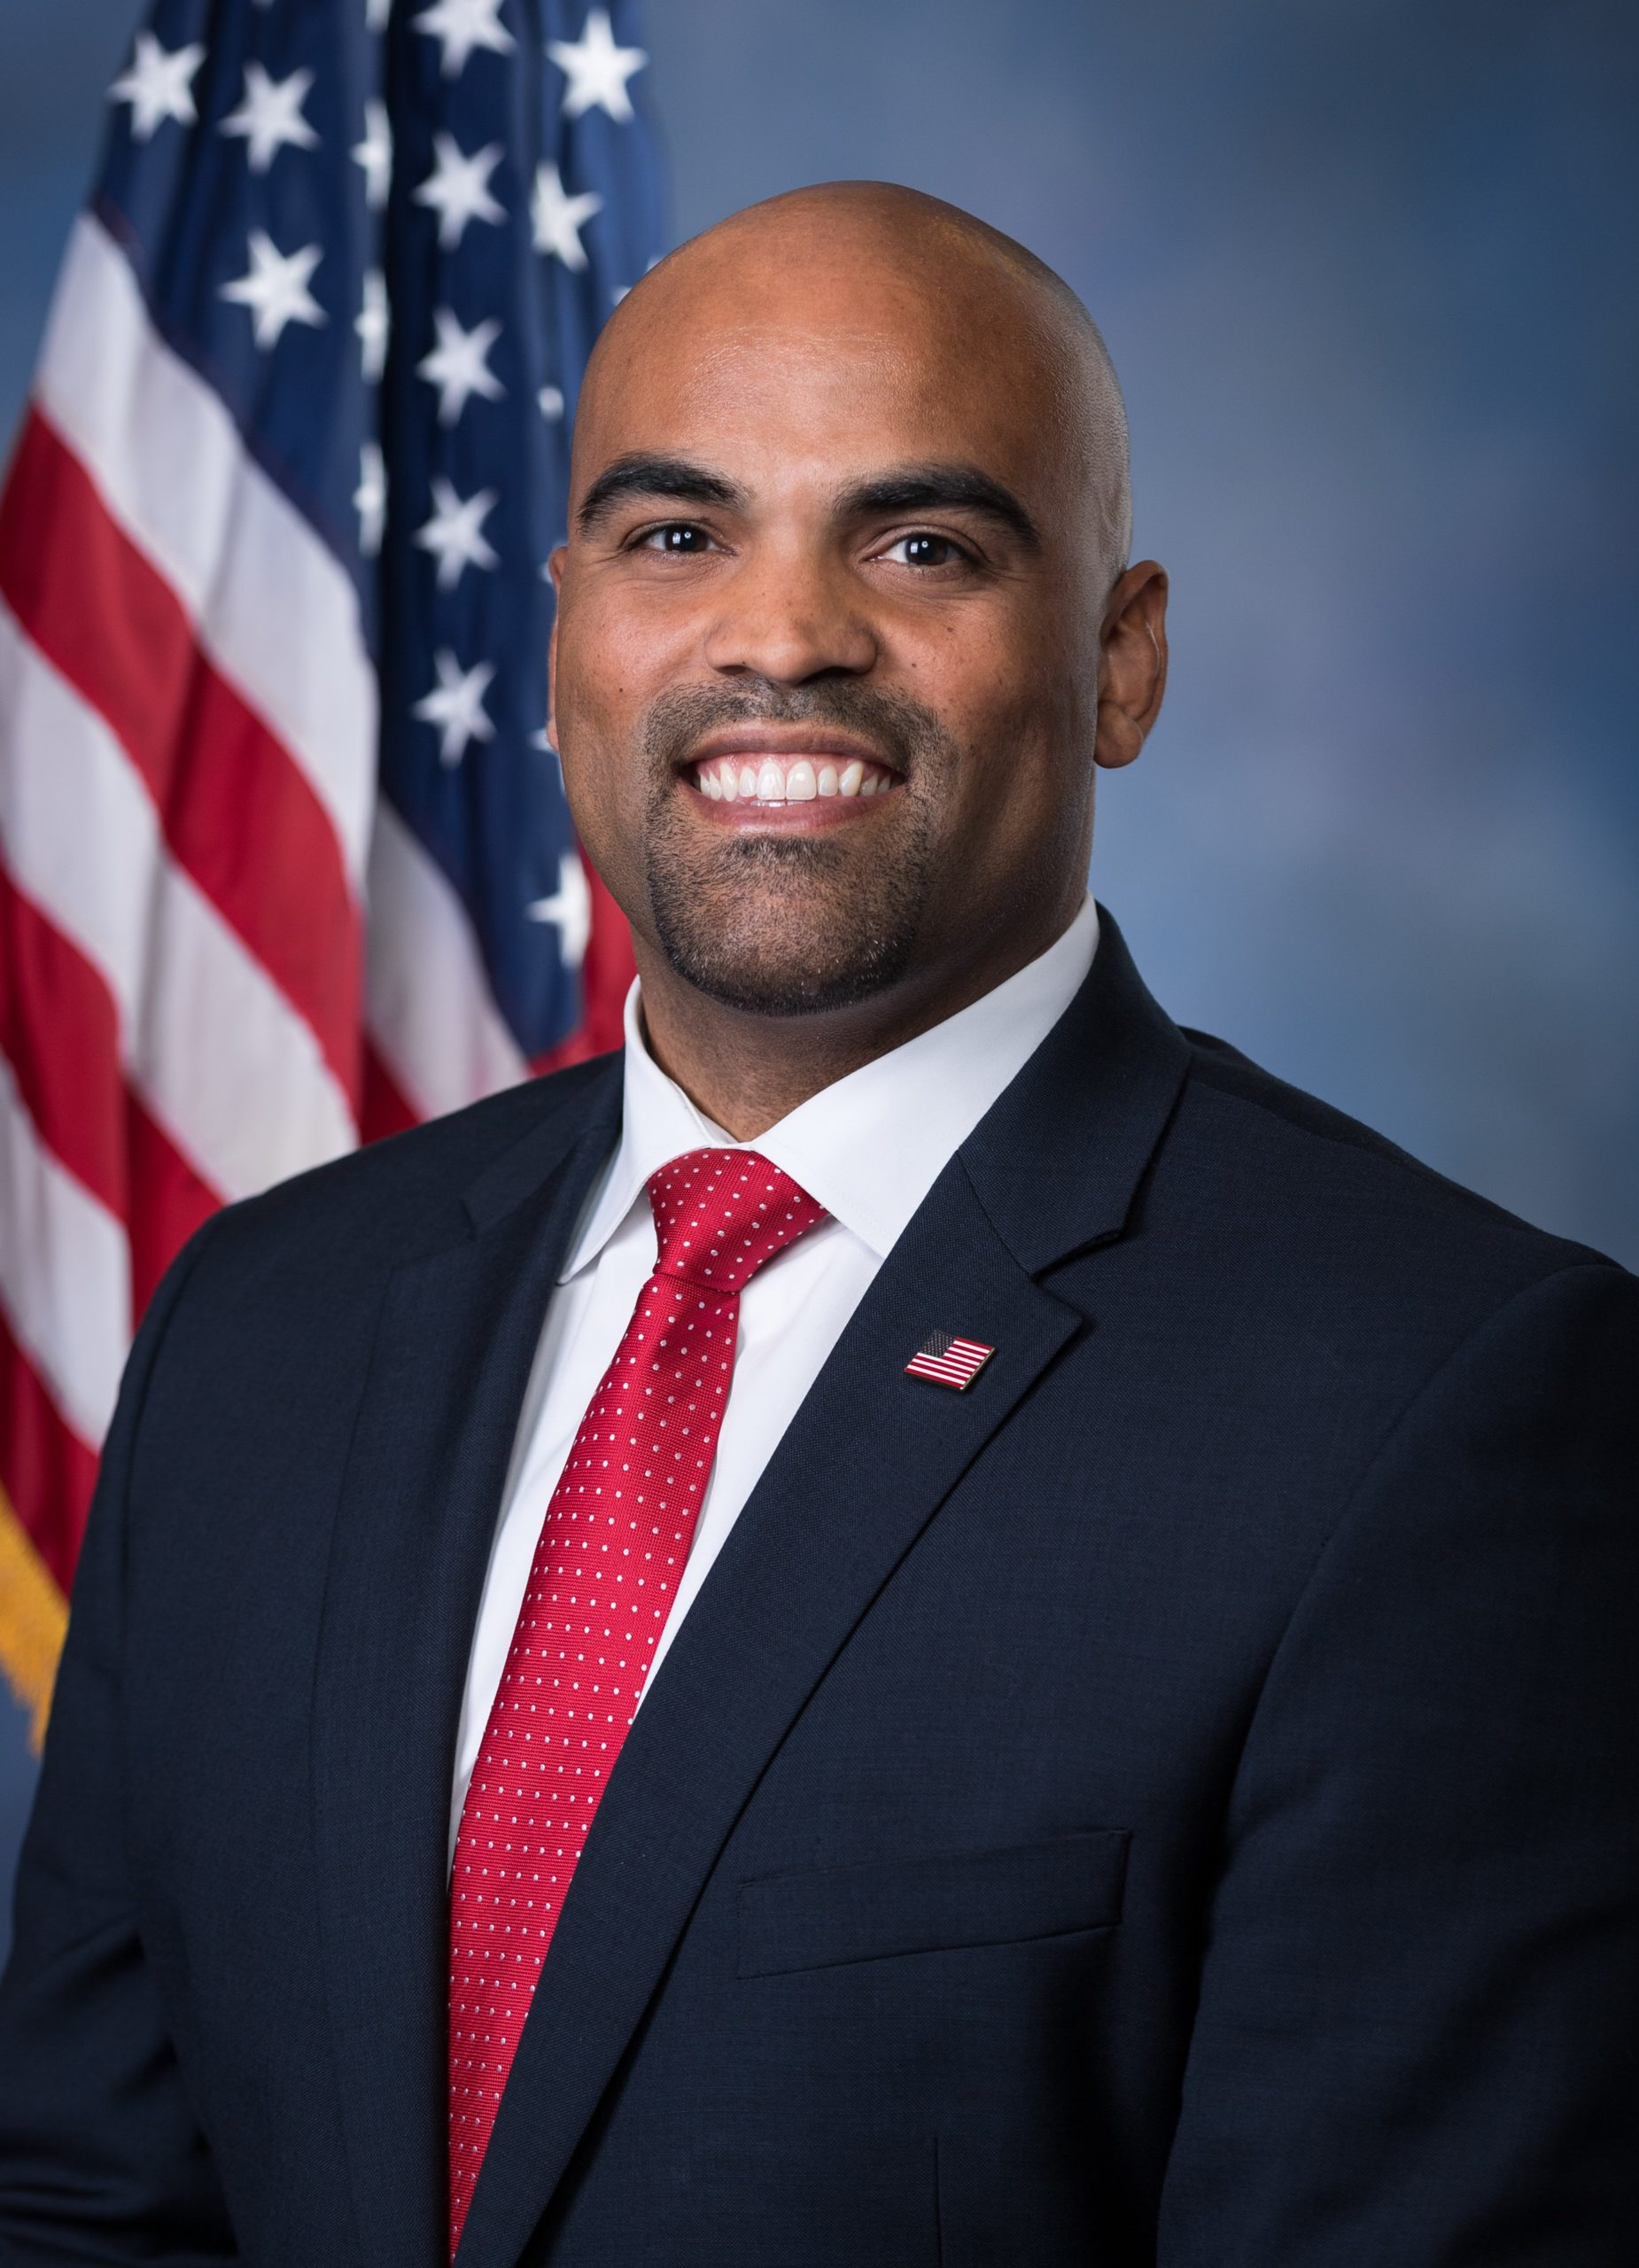 Colin Allred, Official Portrait, 116th Congress of the U.S.